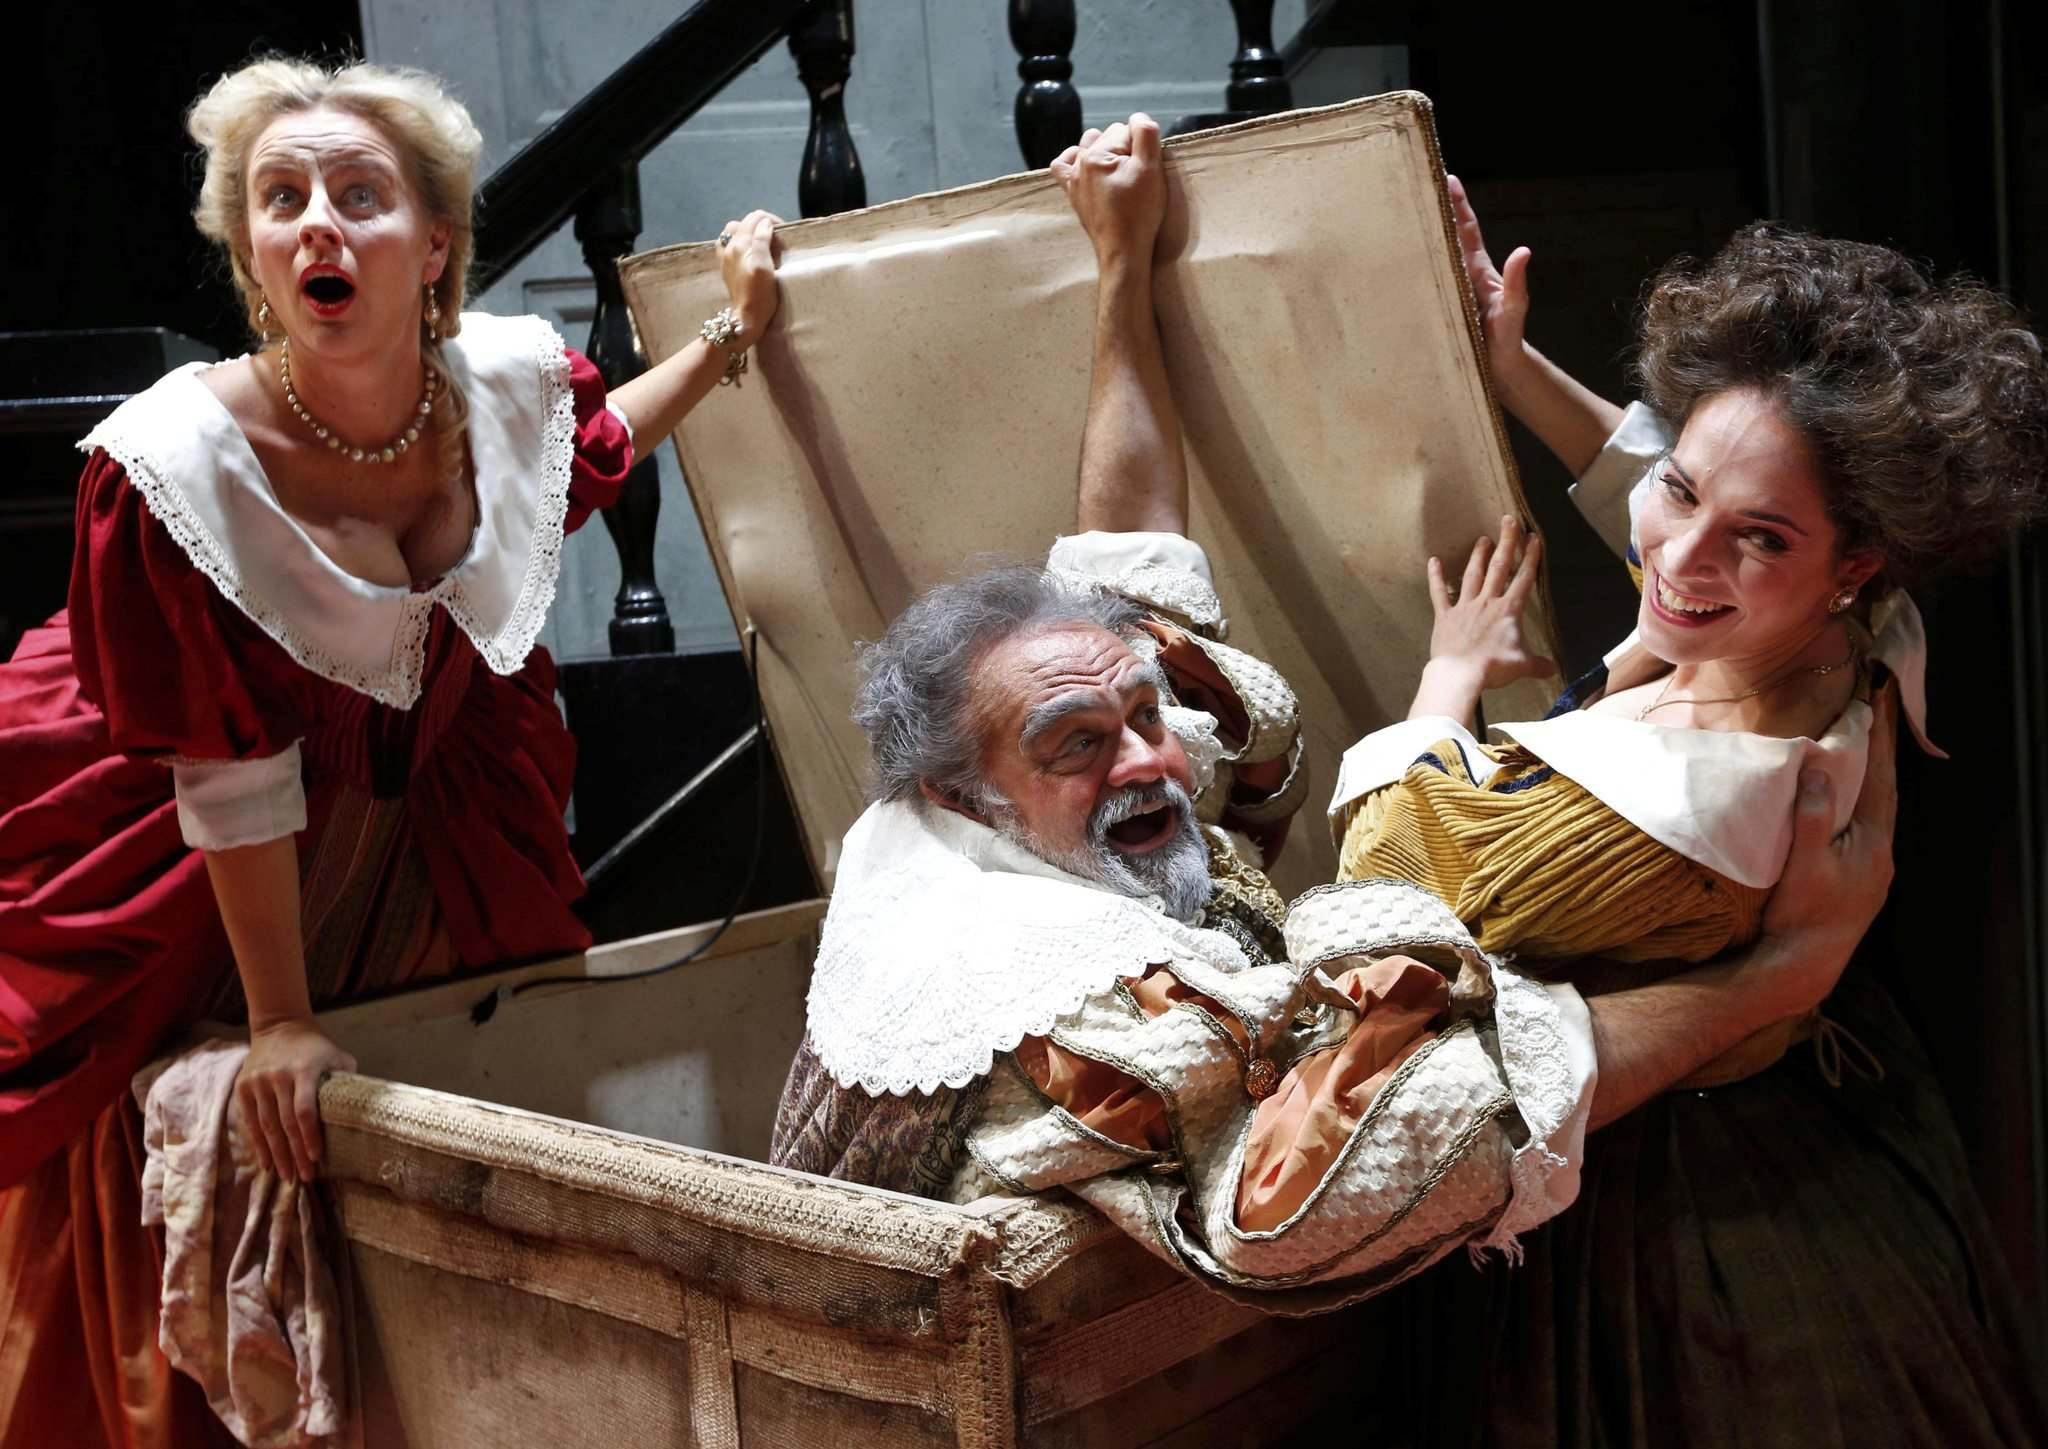 WAYNE GLOWACKI / WINNIPEG FREE PRESS</p><p>Todd Thomas who is singing Falstaff with Monica Huisman (left) as Alice Ford and Lauren Segal, as Meg Page in the Manitoba Opera performance Falstaff at the Centennial Concert Hall. Holly Harris story Nov. 15 2016</p>